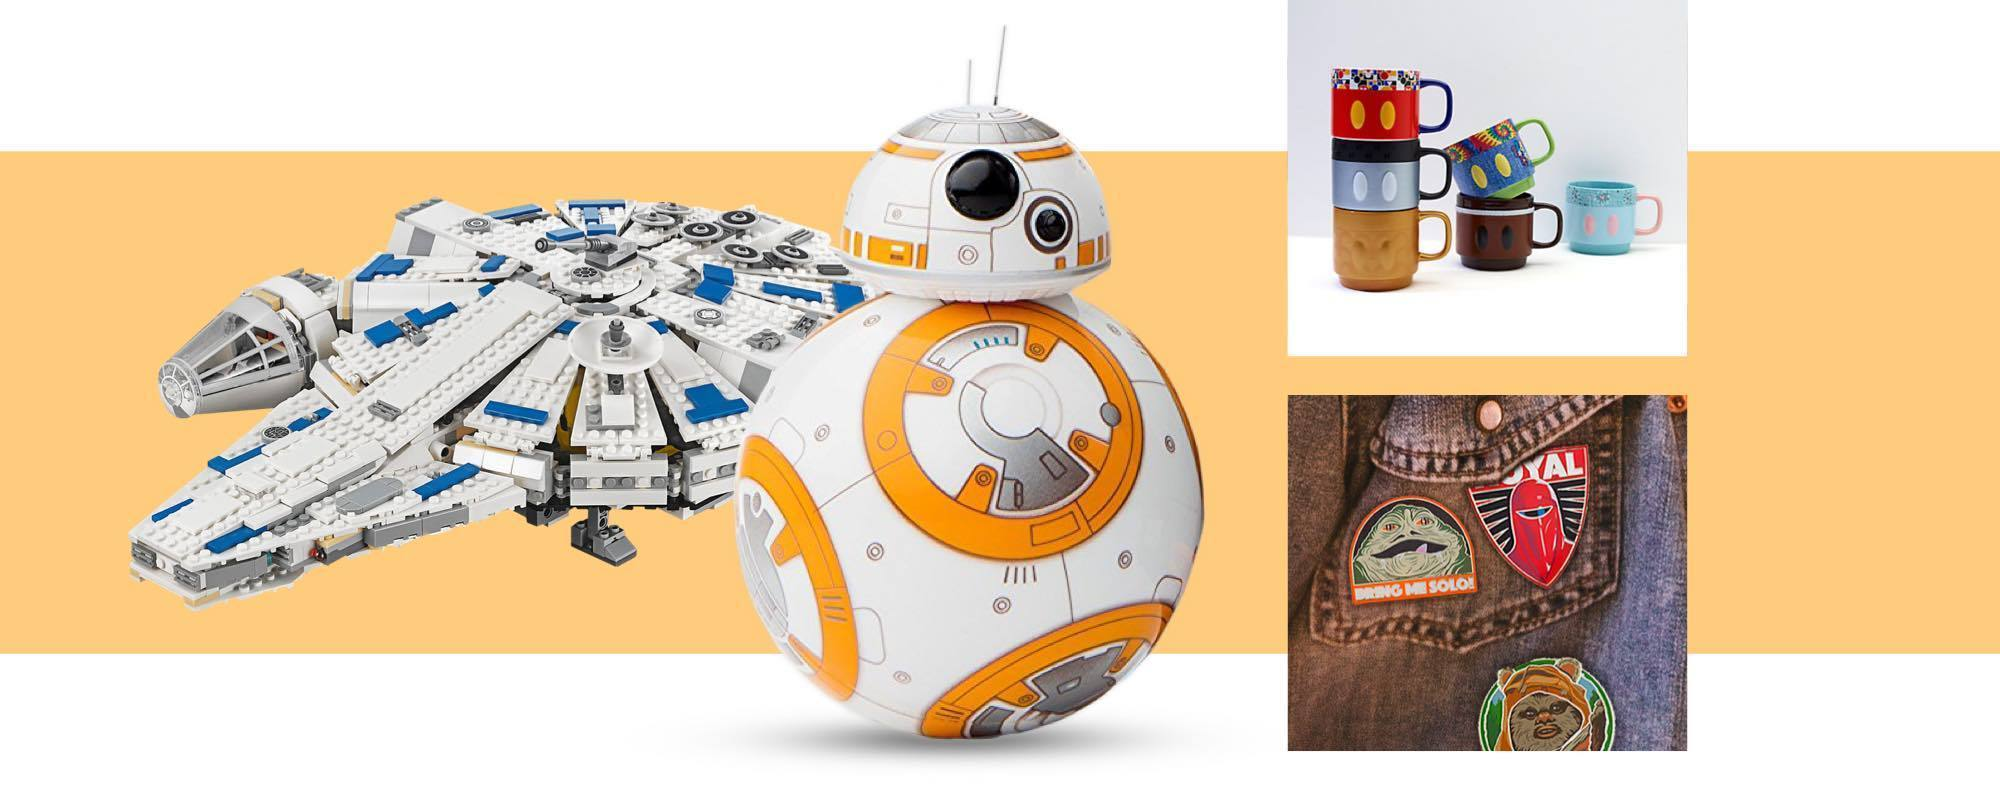 Lego Millennium Falcon, BB-8 Droid, Mickey Mouse mugs, Star Wars patches